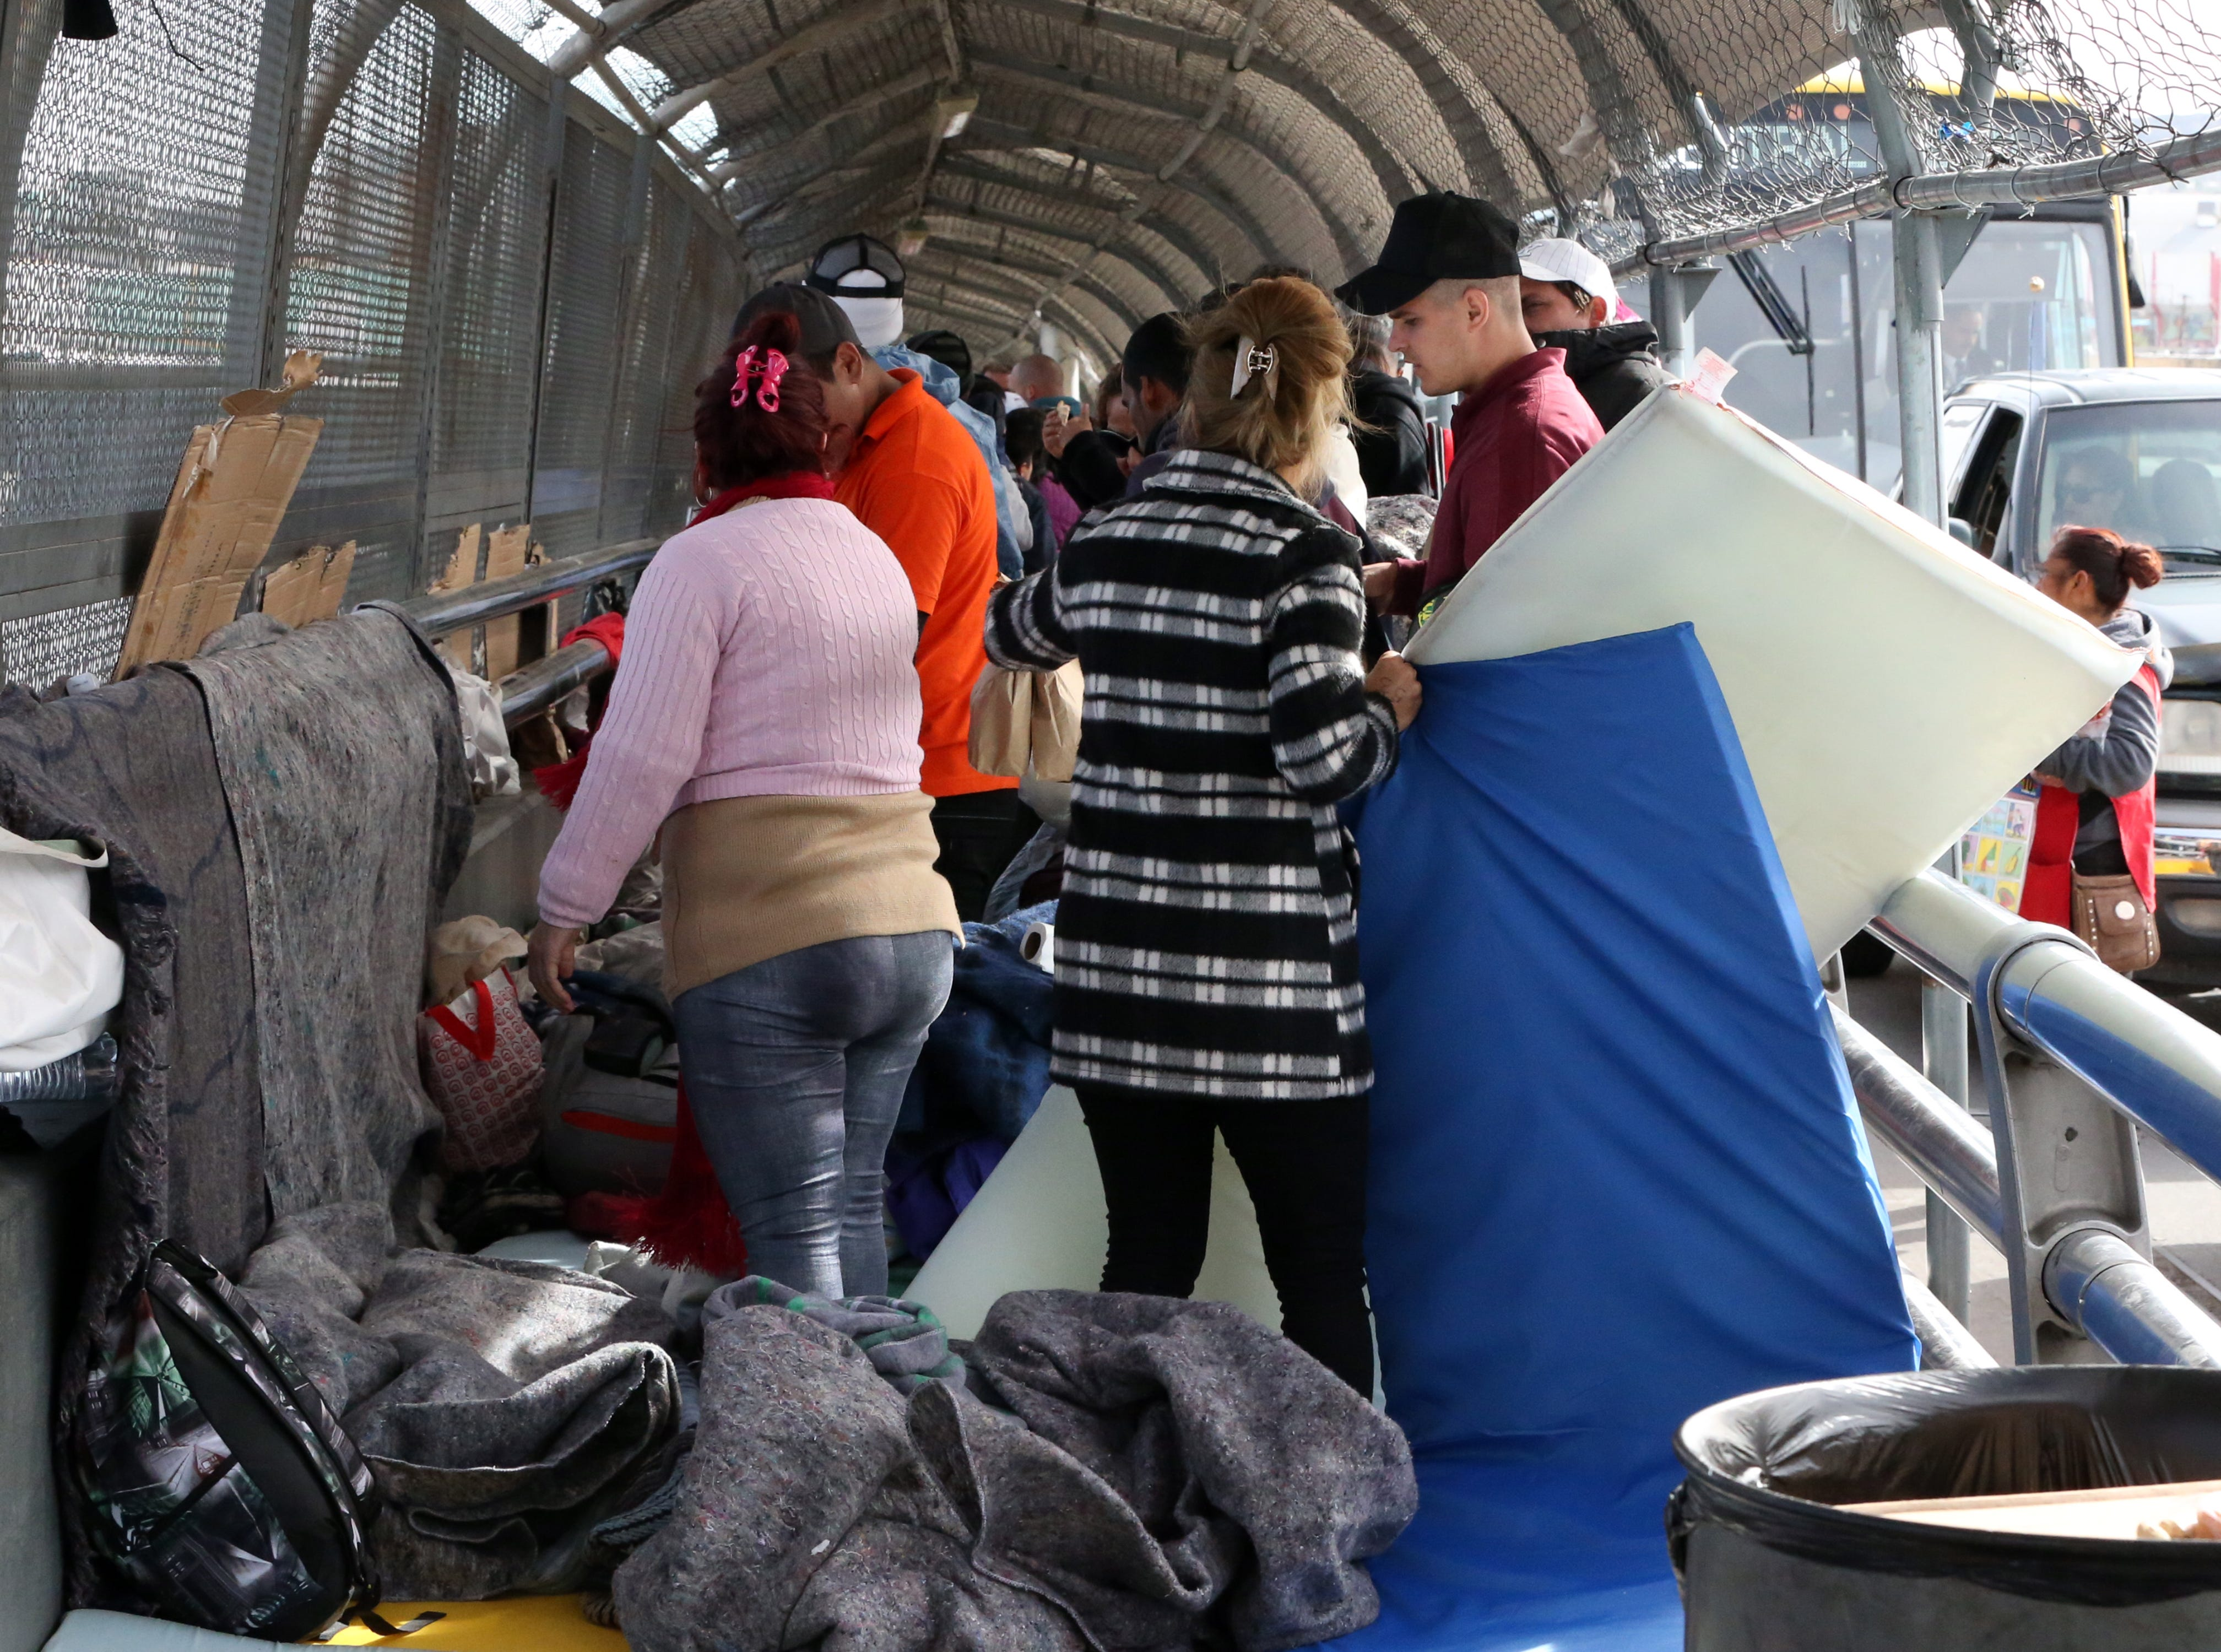 Just over 100 undocumented migrants were camped on the Paso Del Norte international bridge waiting to enter the U.S. on Nov. 1.